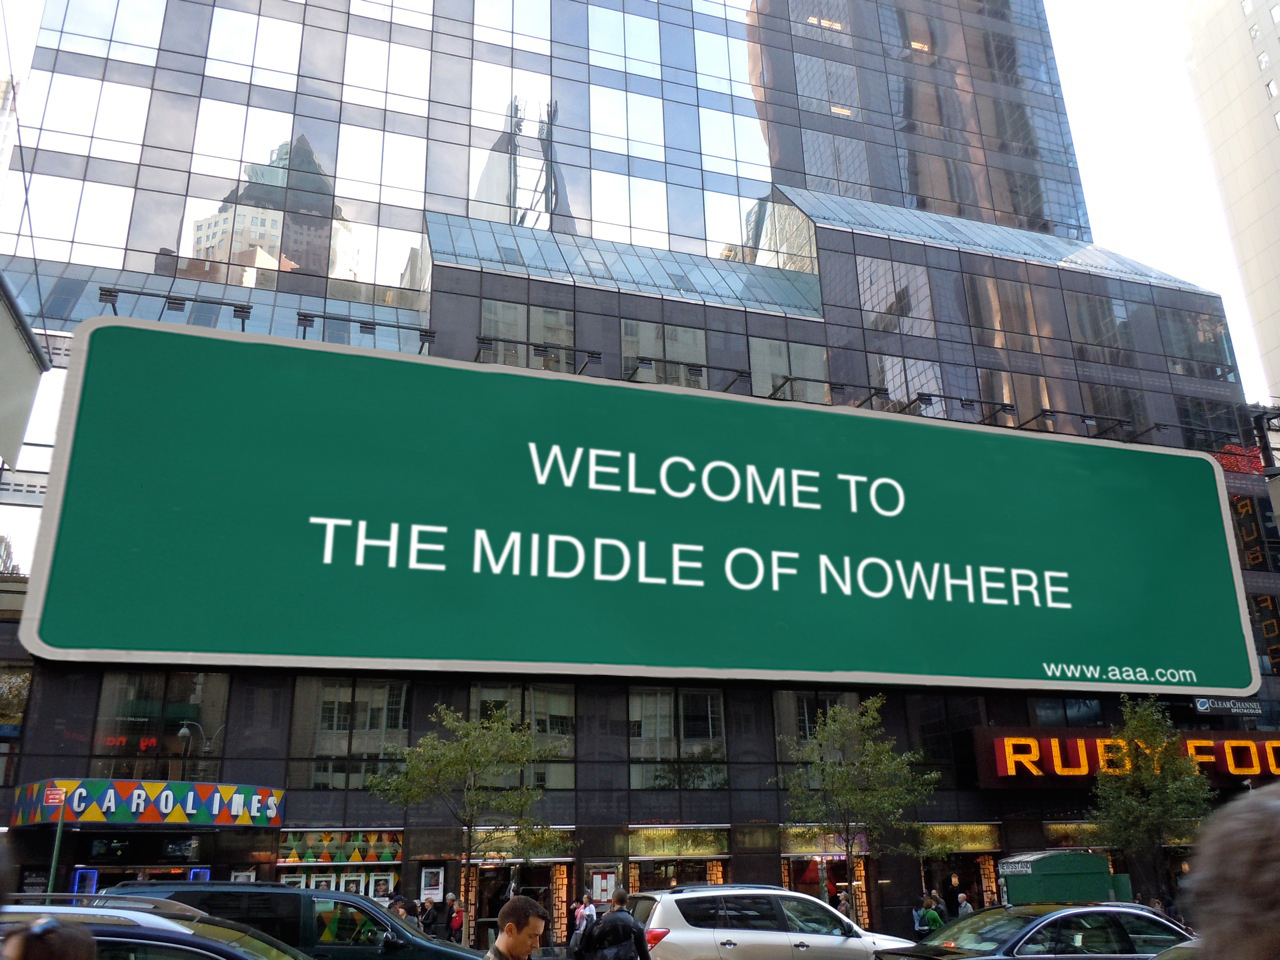 The middle of nowhere is closer than you think